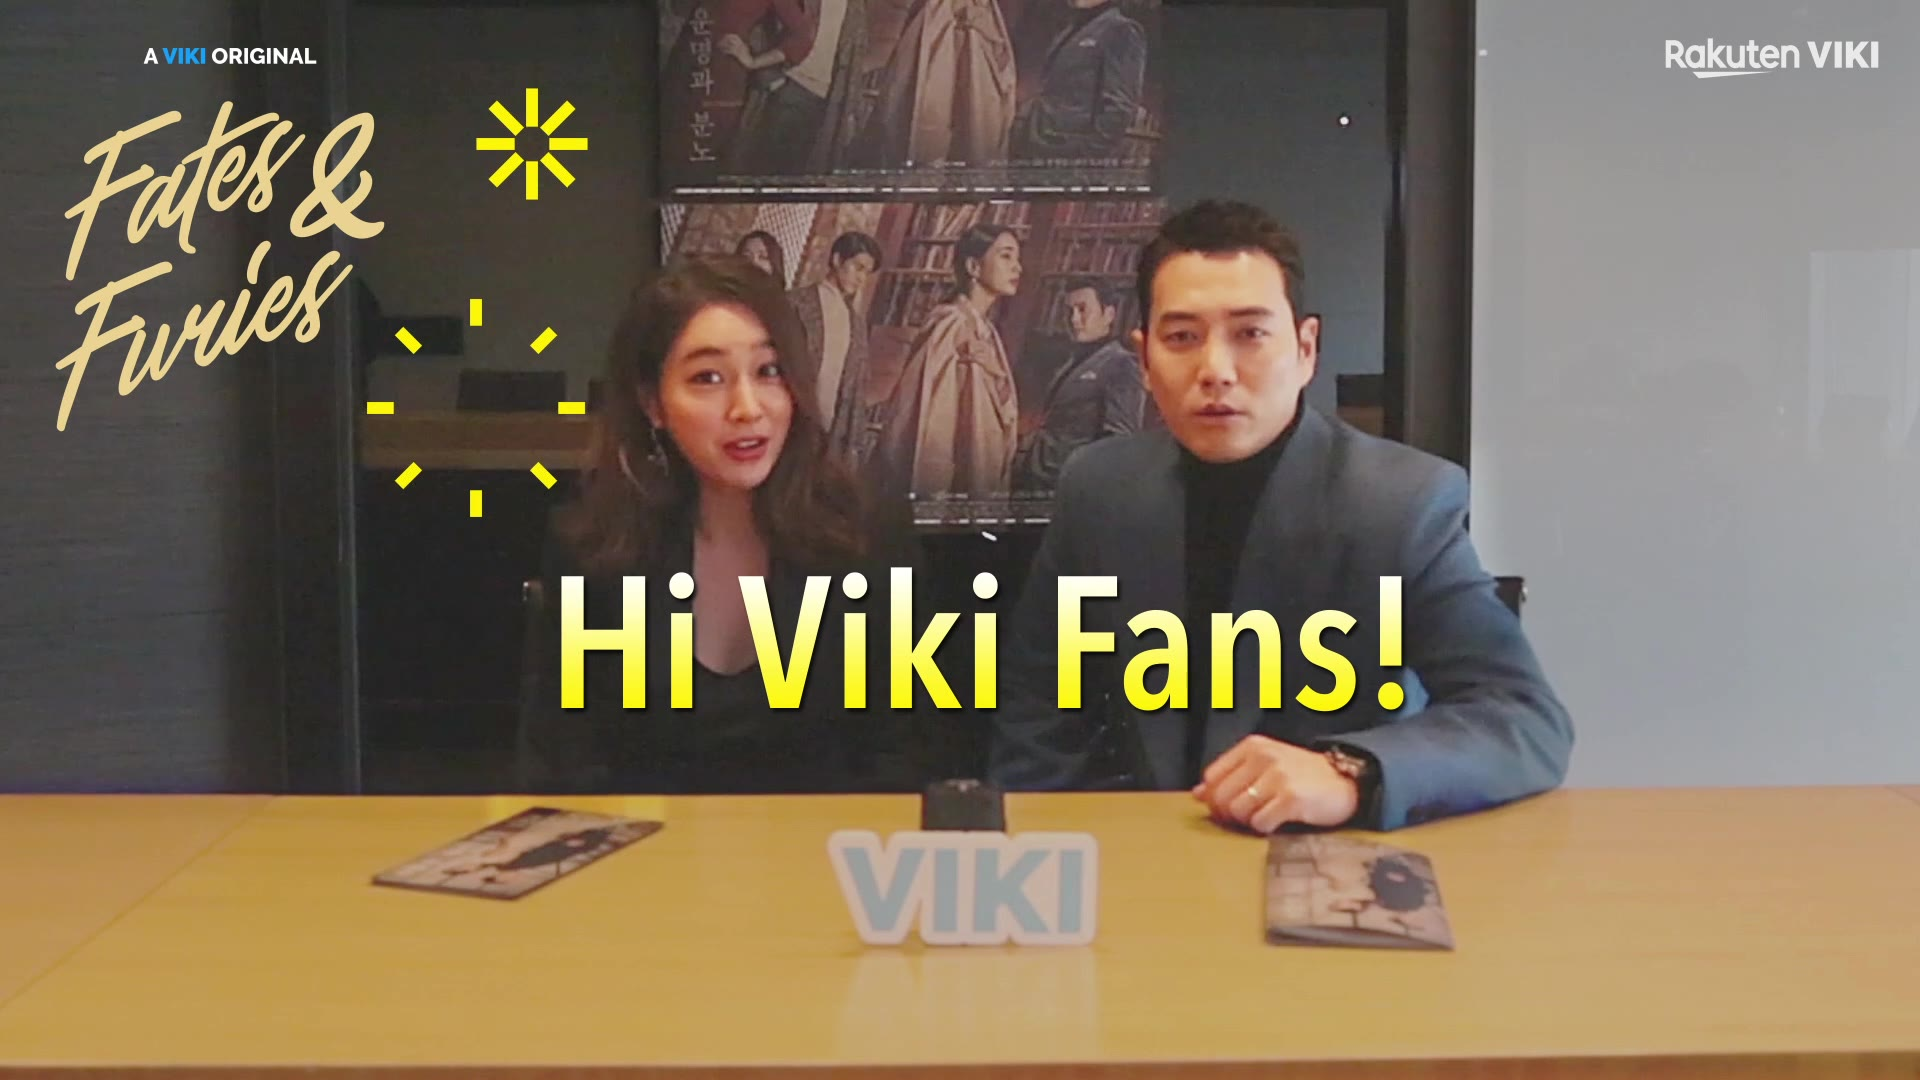 Shoutout to Viki Fans: Fates and Furies